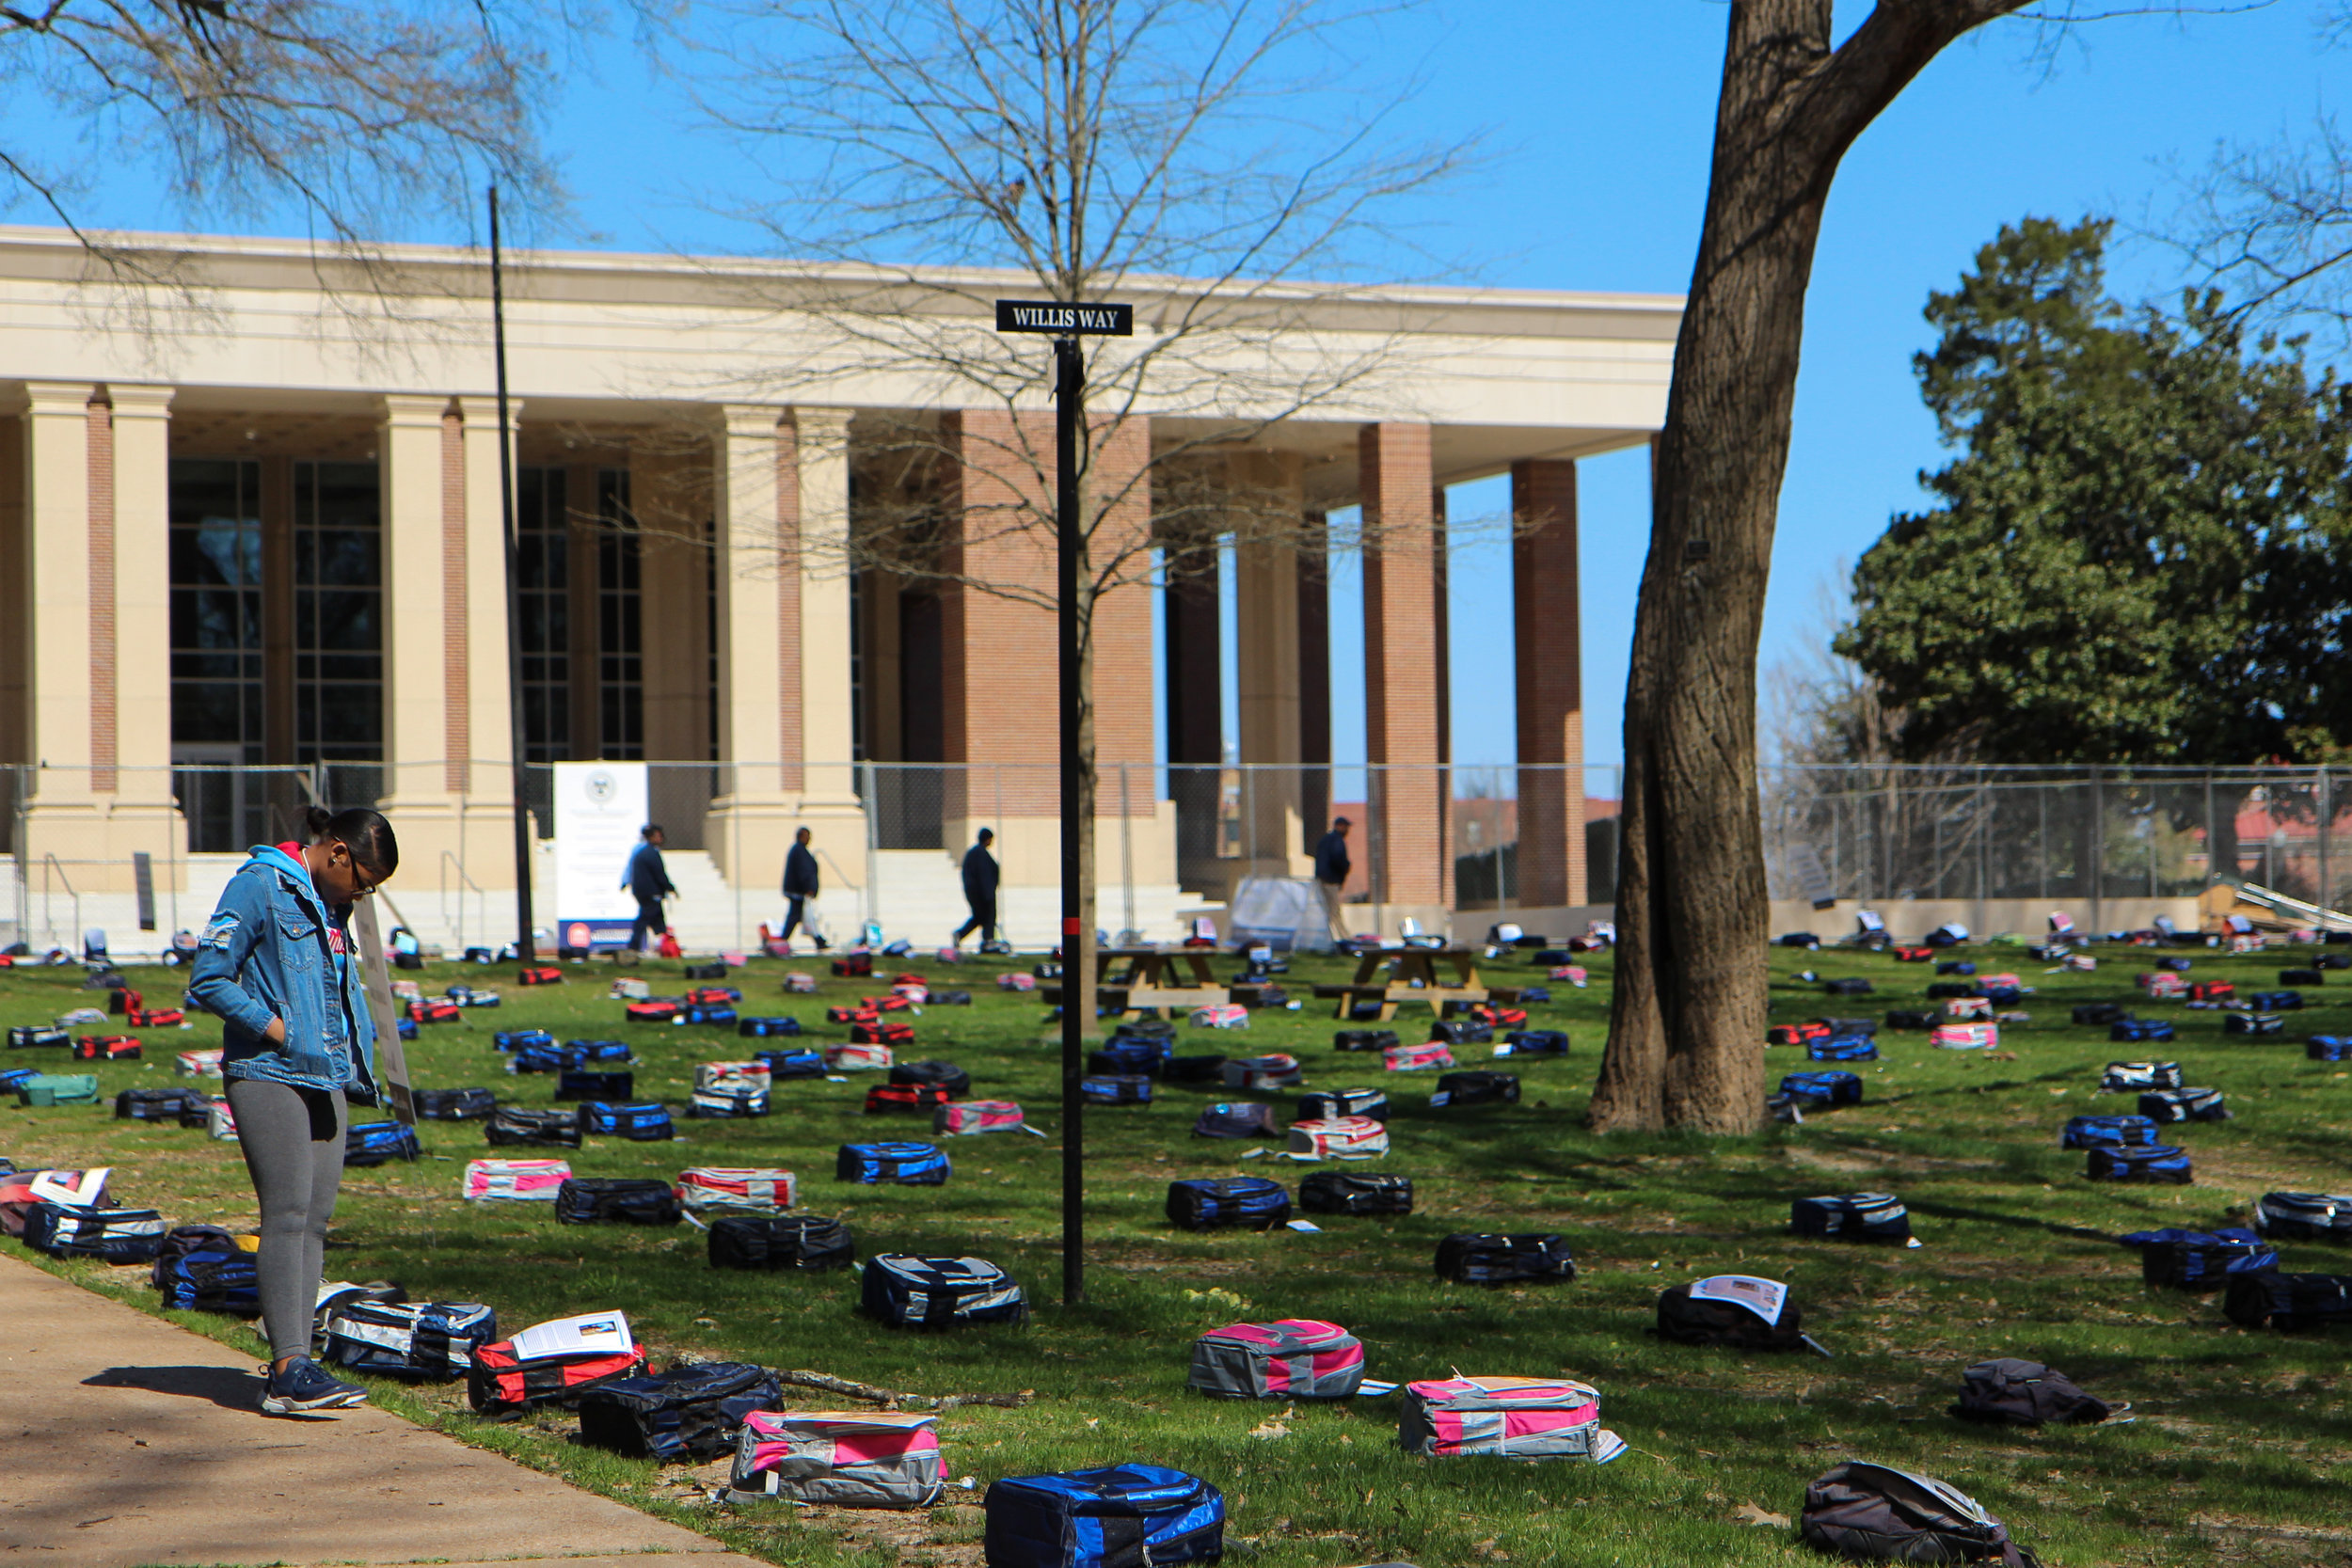 The Grove at the University of Mississippi was blanketed with more than 1,000 backpacks on March 19, each representing a college student who lost their life to suicide.